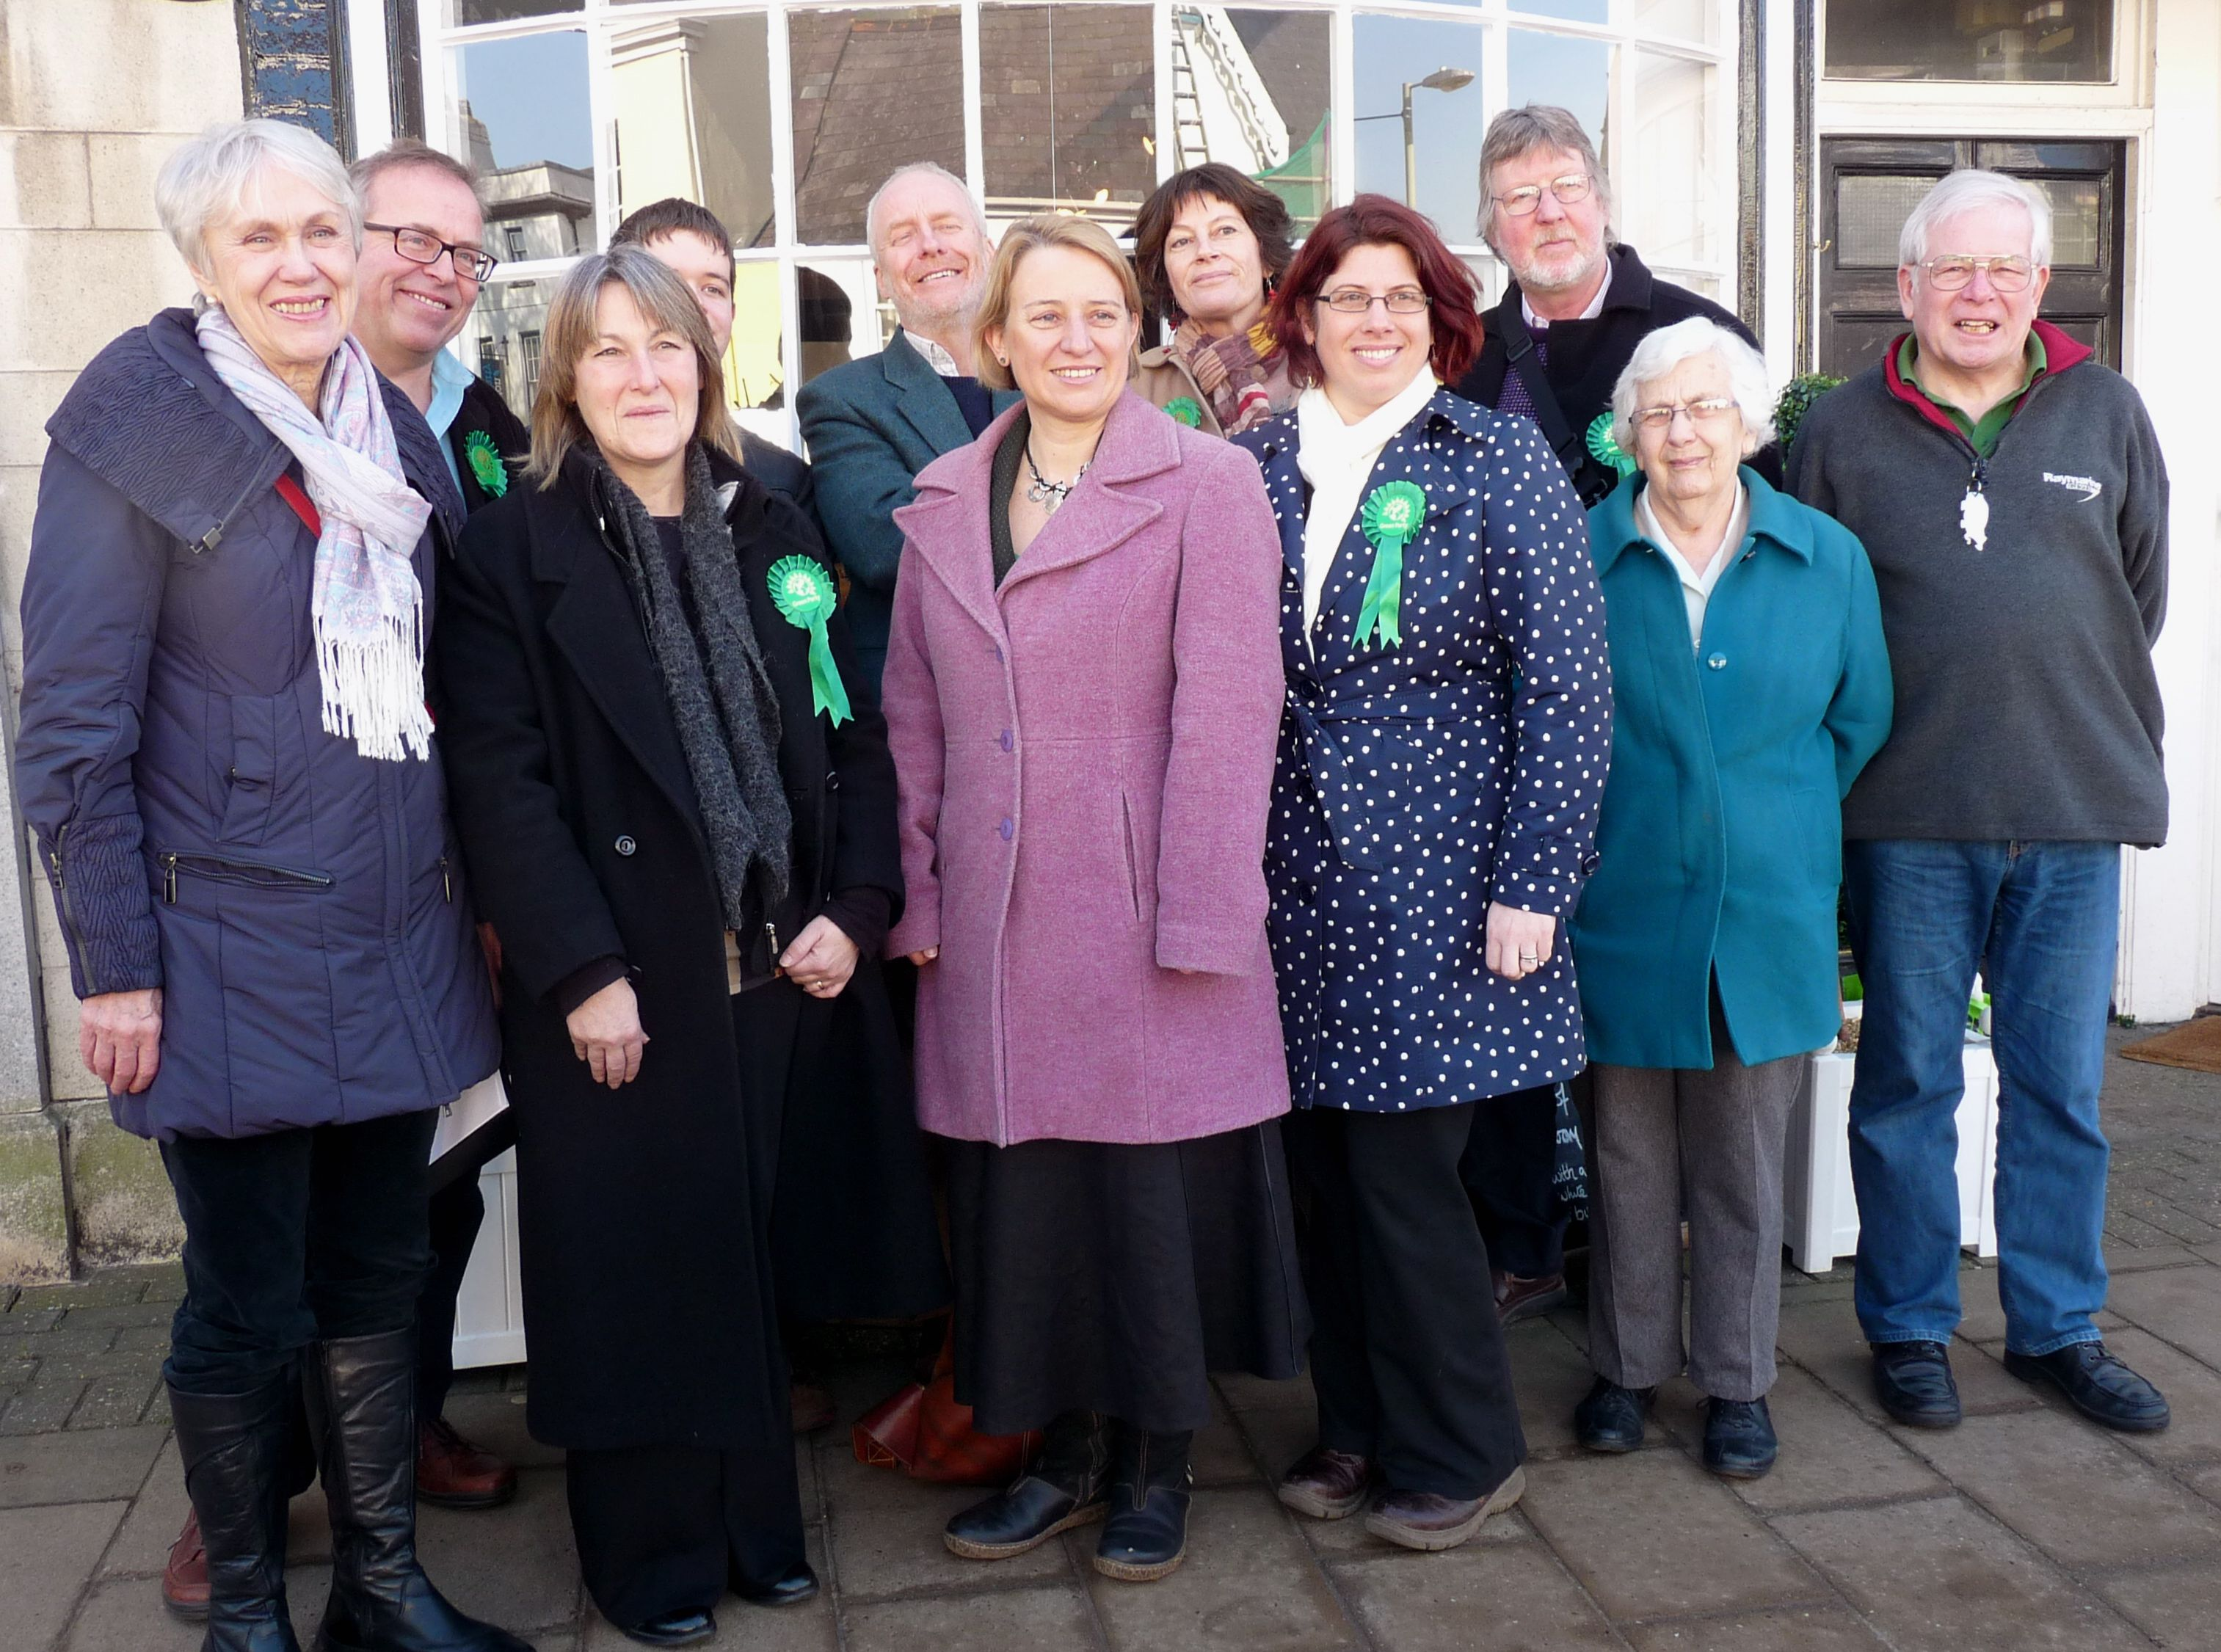 Some of our members with Leader of the Green Party Natalie Bennett last week in Honiton